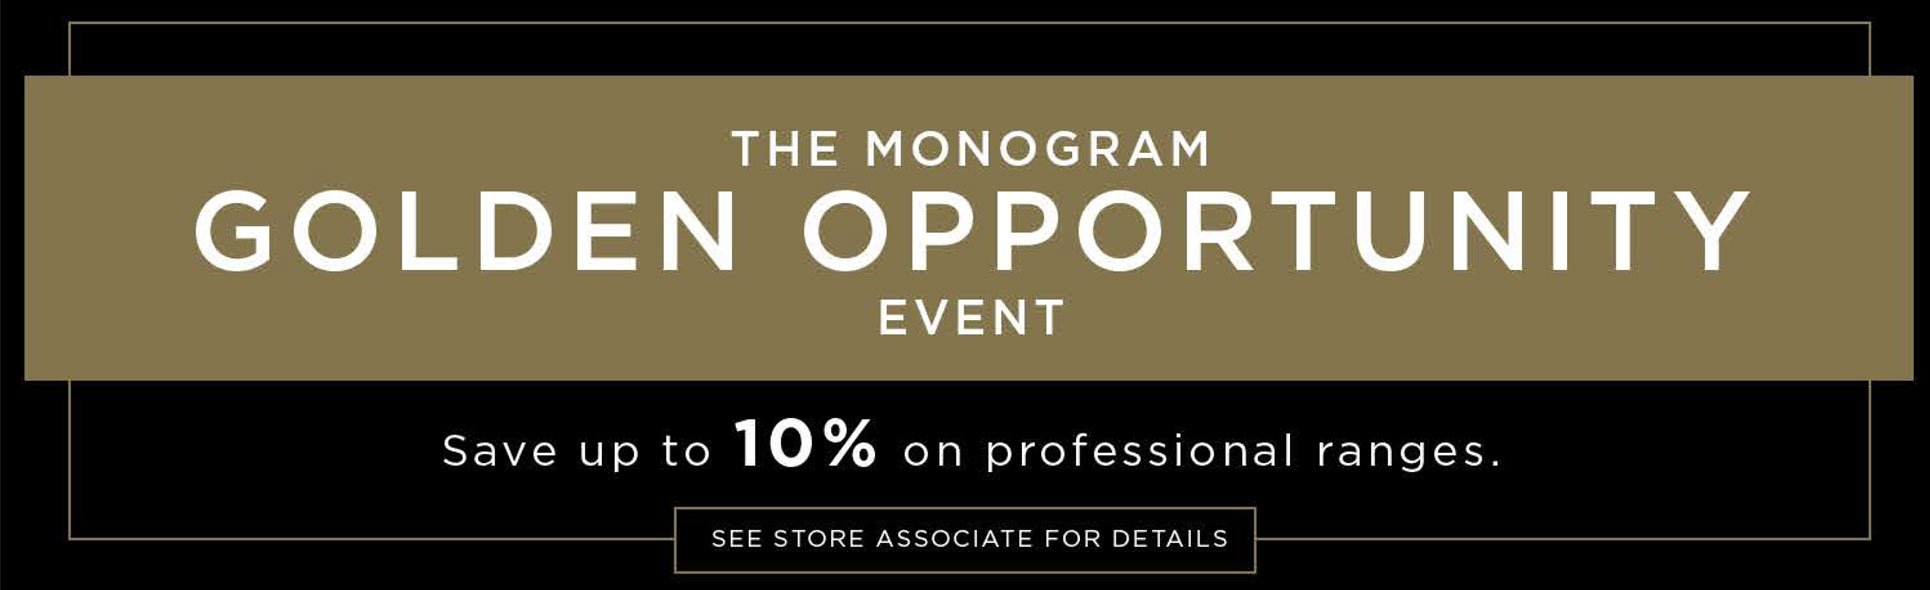 monogram golden opportunity